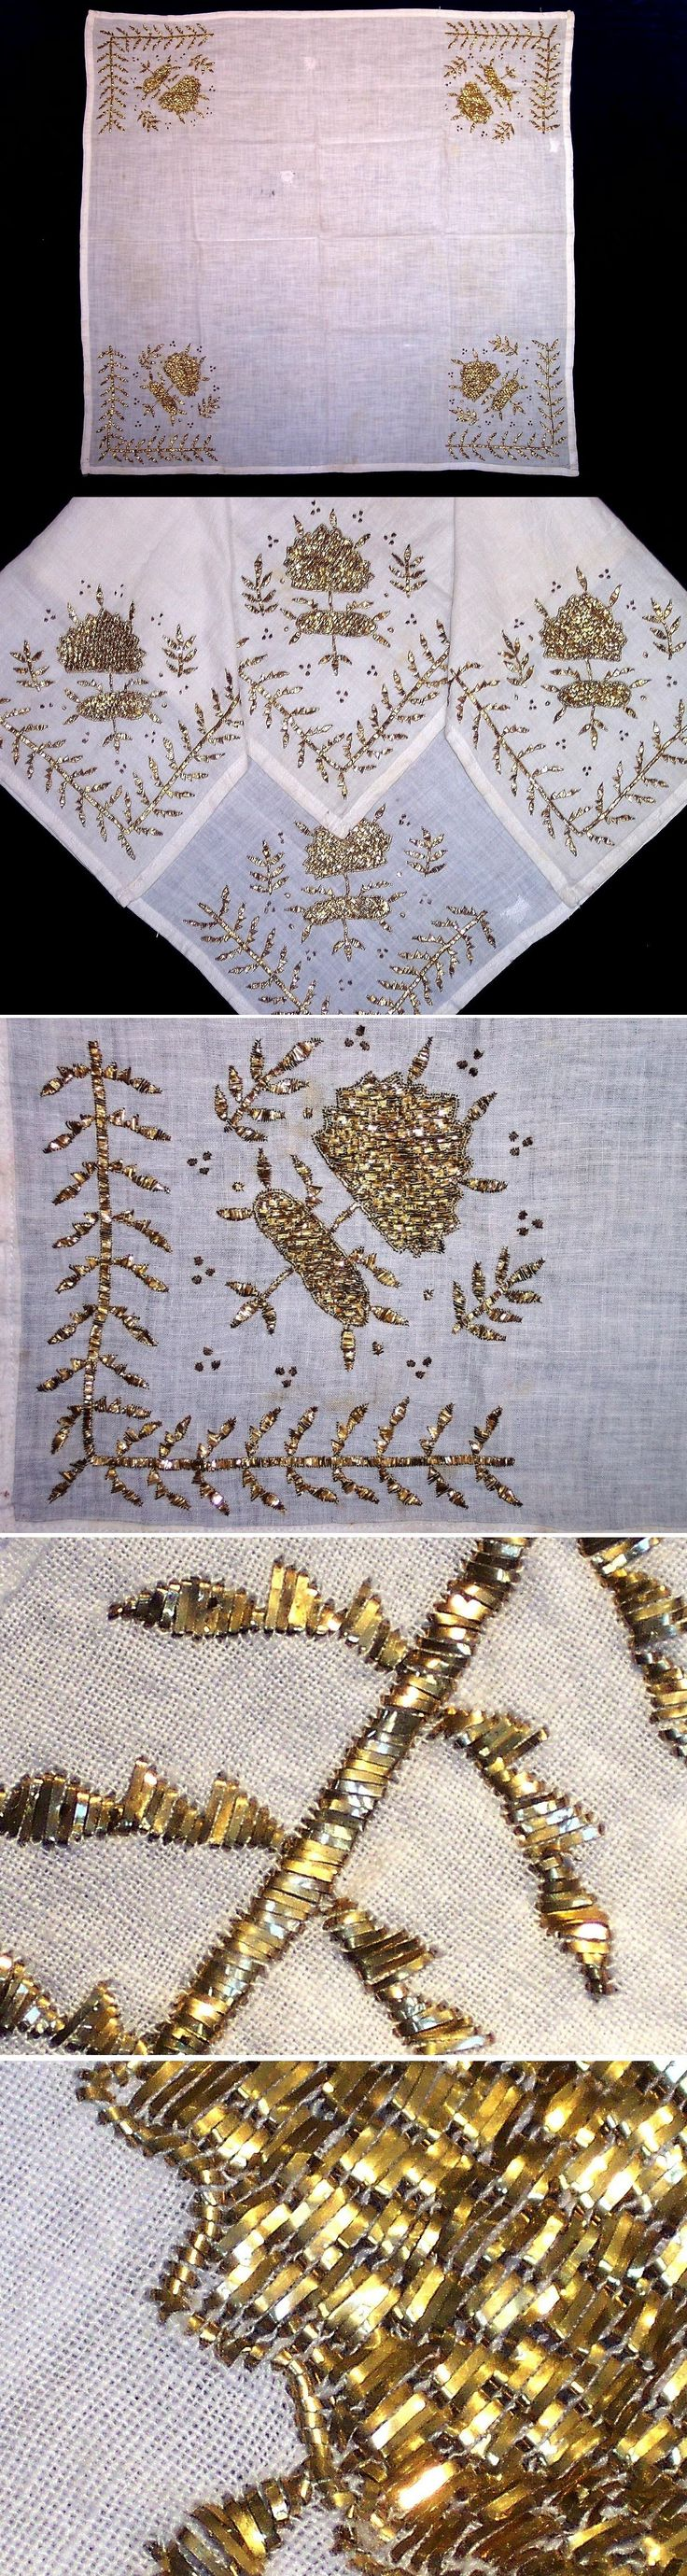 A 'çevre' (square kerchief; a decorative accessory, for the interior, but also used in costumes by both men and women). From the Bursa region, ca. 1925-1950. The 'tel kırma' embroidery is 'two-sided' (identical on both sides); motives are obtained by sticking narrow metallic strips (often silver) through the fabric and folding them. Design: leaves and twigs. (Inv.nr. brdw003 - Kavak Collection of Anatolian Textiles -Antwerpen/Belgium).